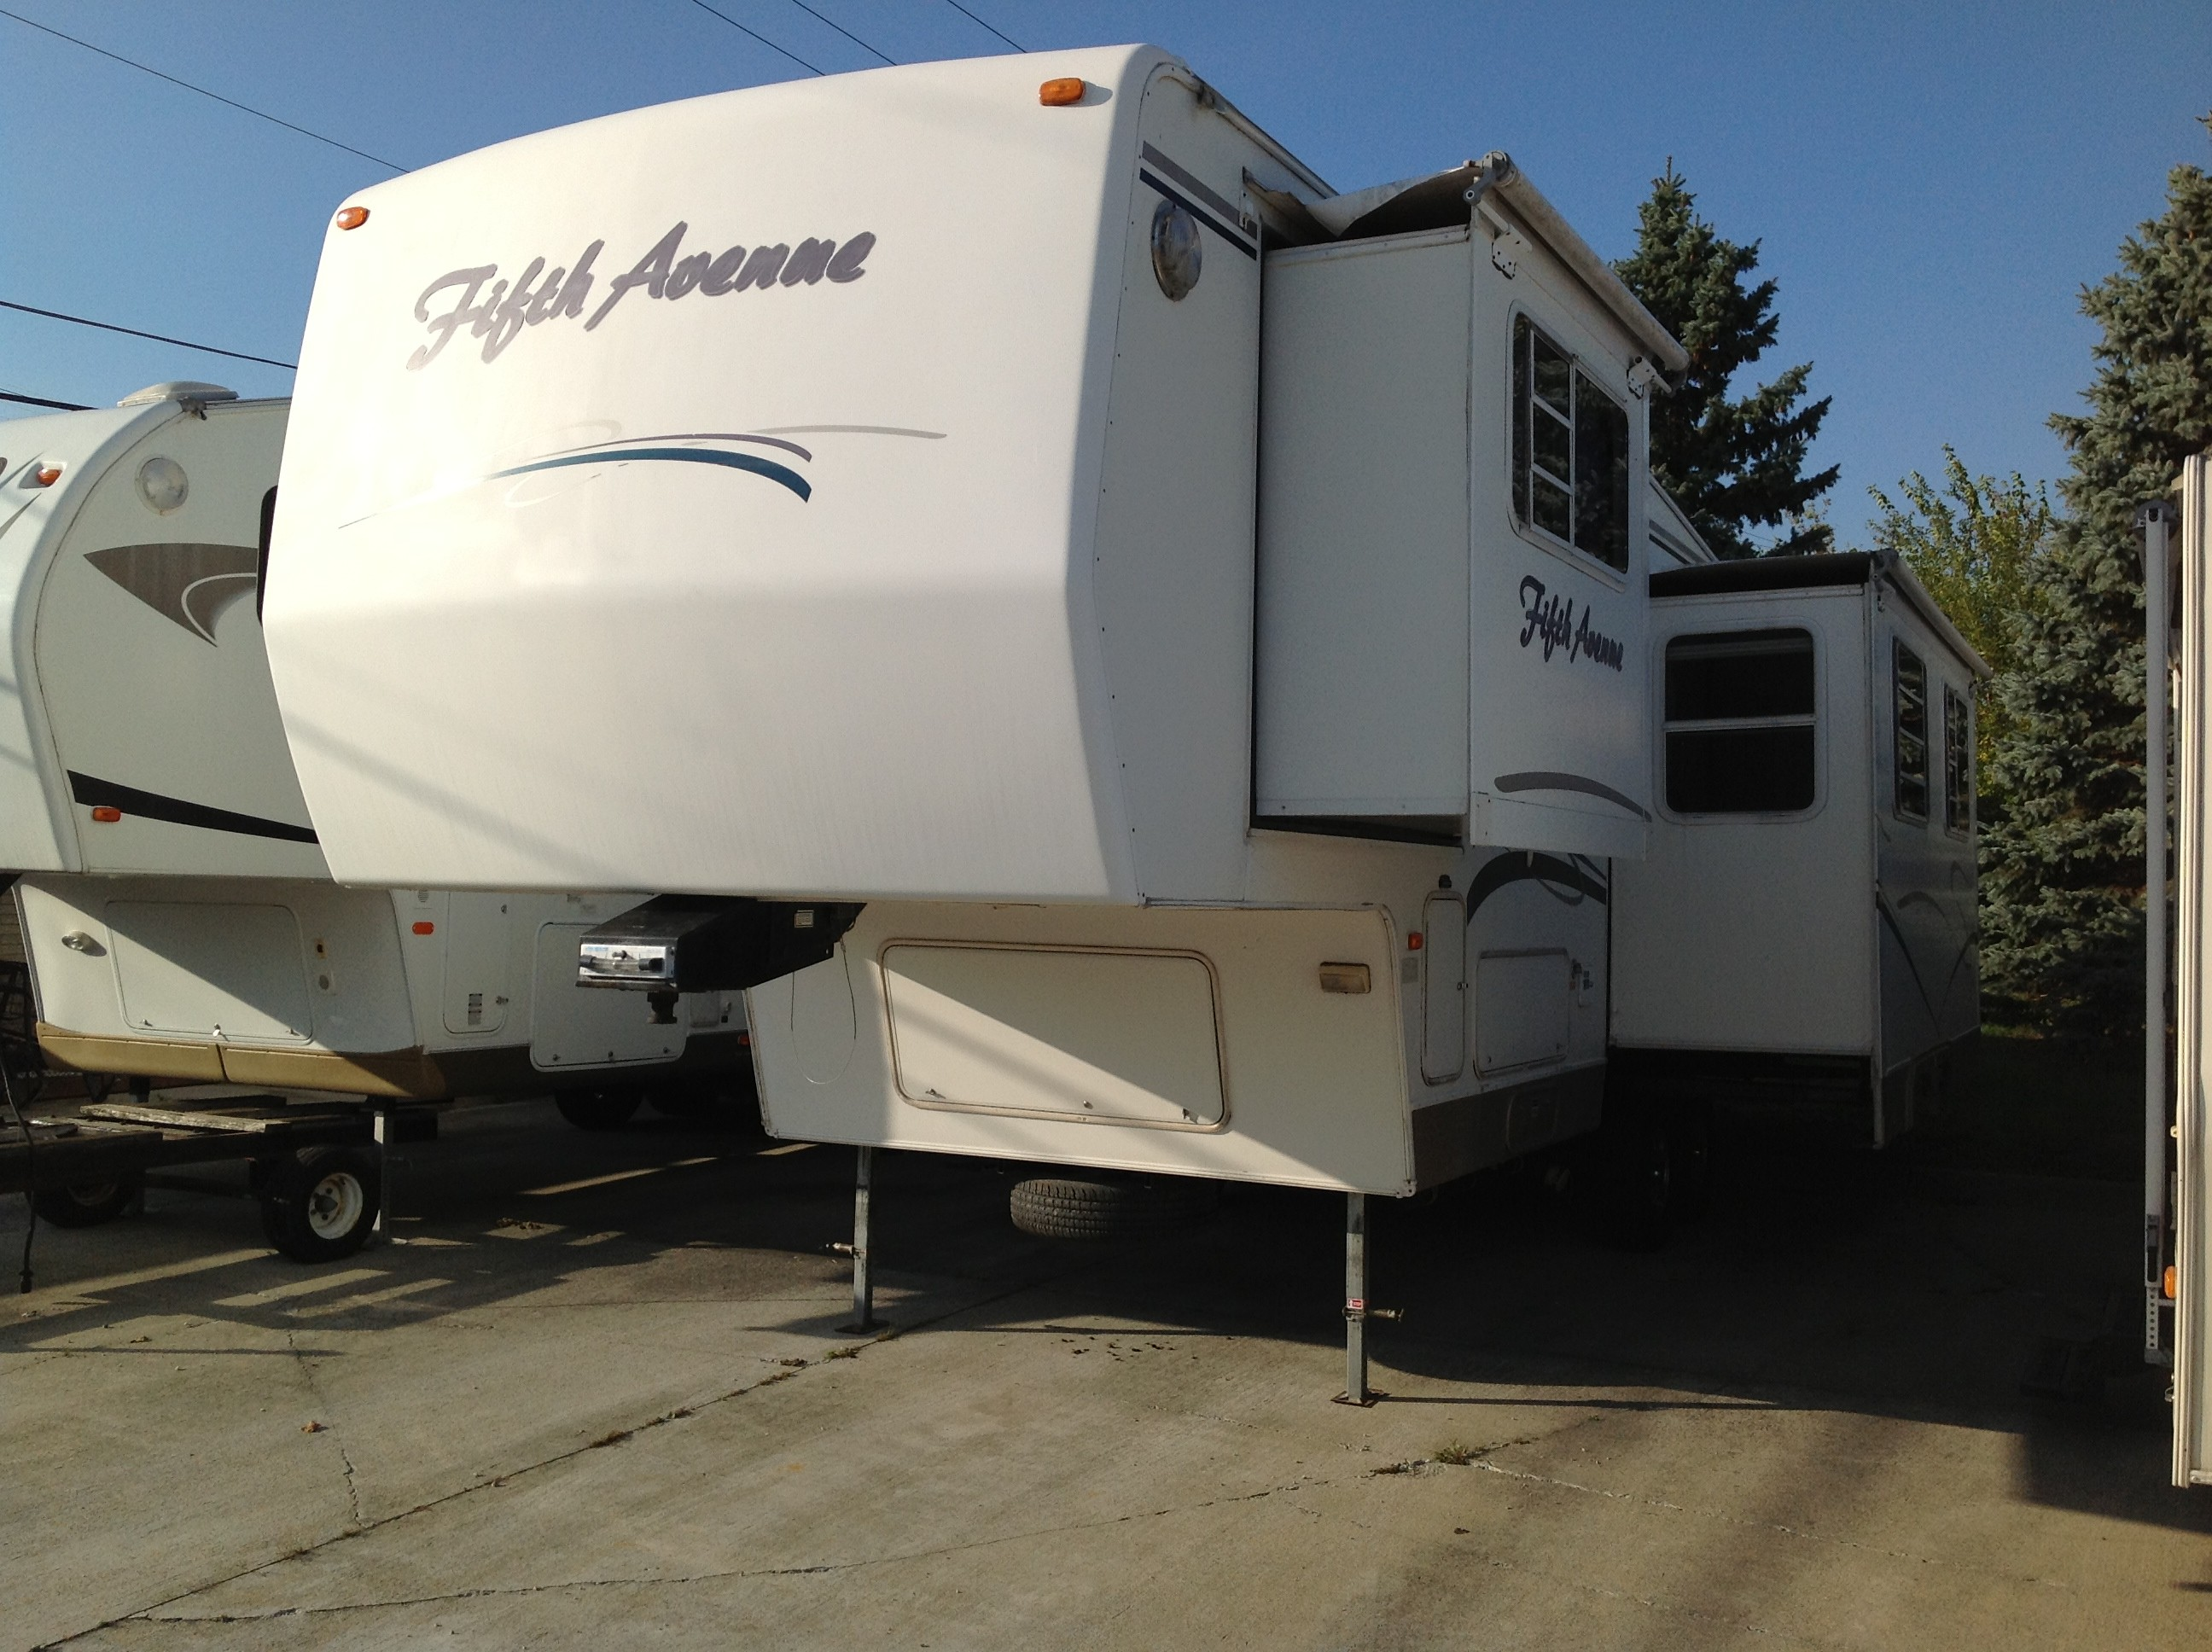 Used, 1999, Dutchmen, 30 RK Fifth Avenue, Fifth Wheels